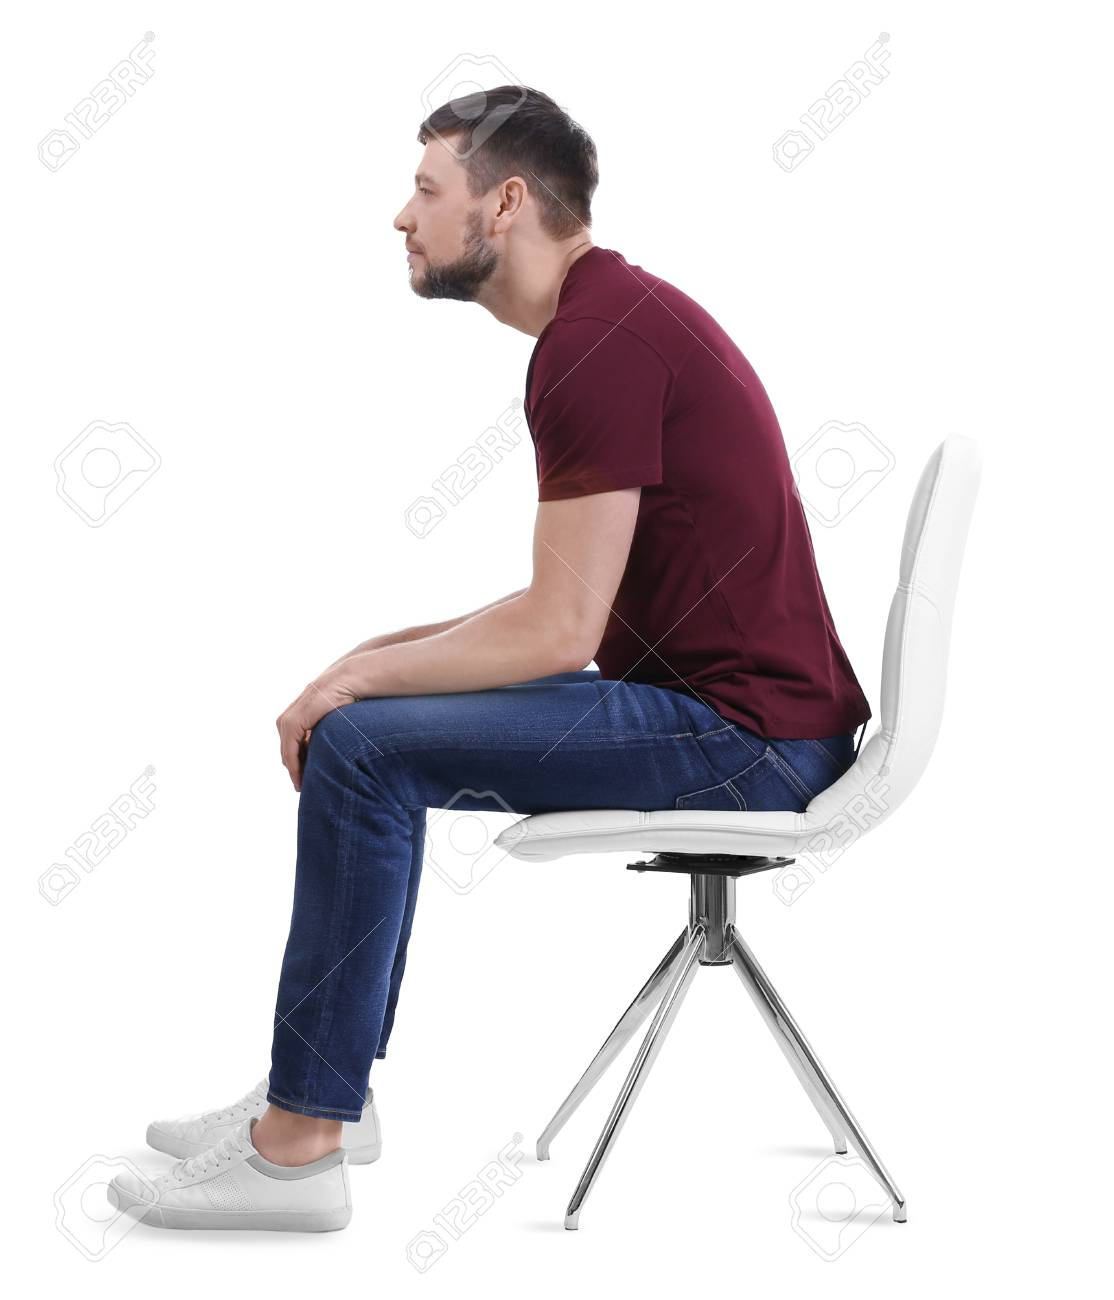 posture chair sitting era lounge low steel concept man on against white background stock photo 97521727